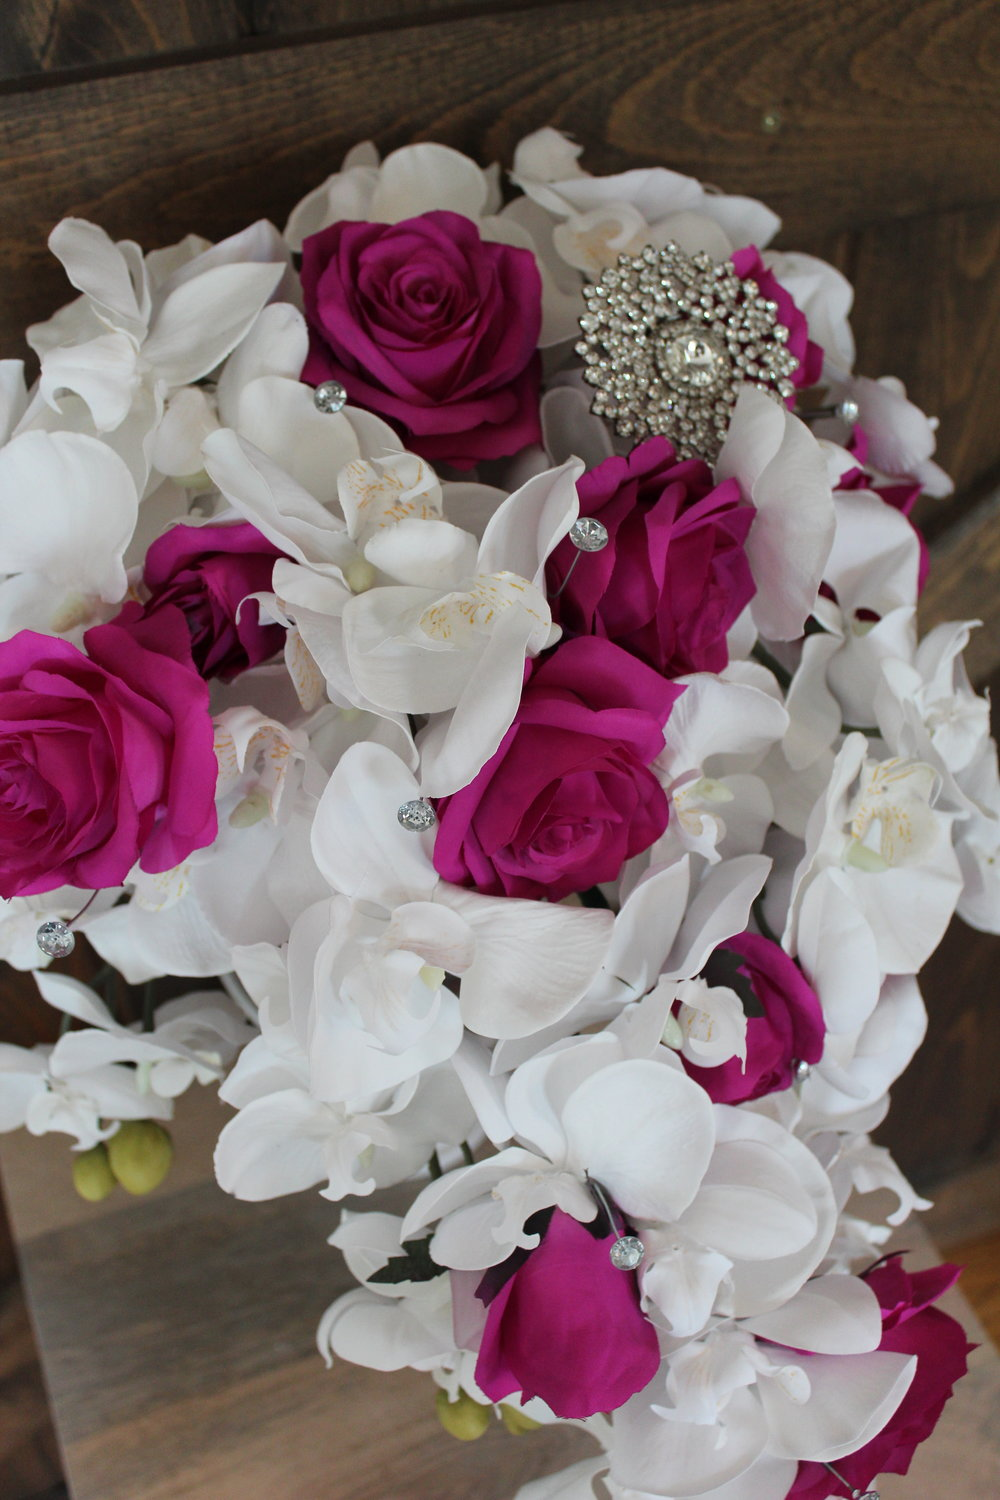 Wedding-bouquet-silk-flowers-bling.jpg